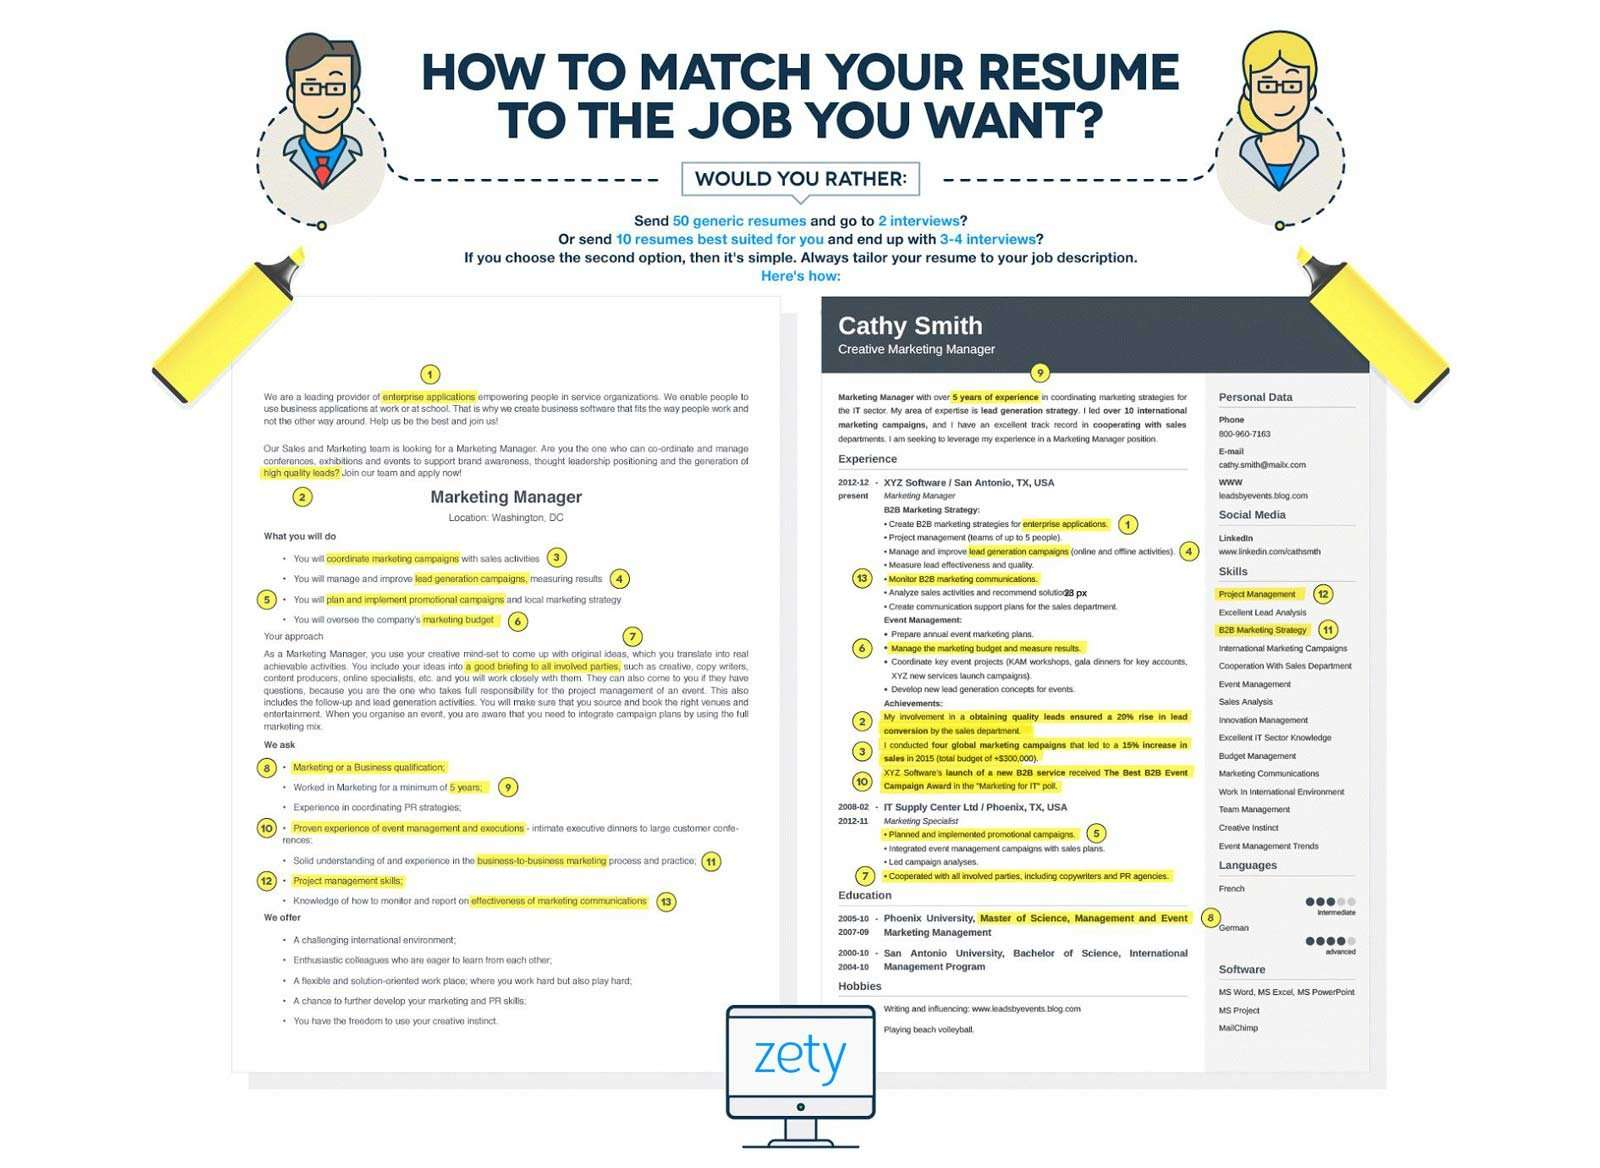 How to Match Your Resume to the Job You Want (2)